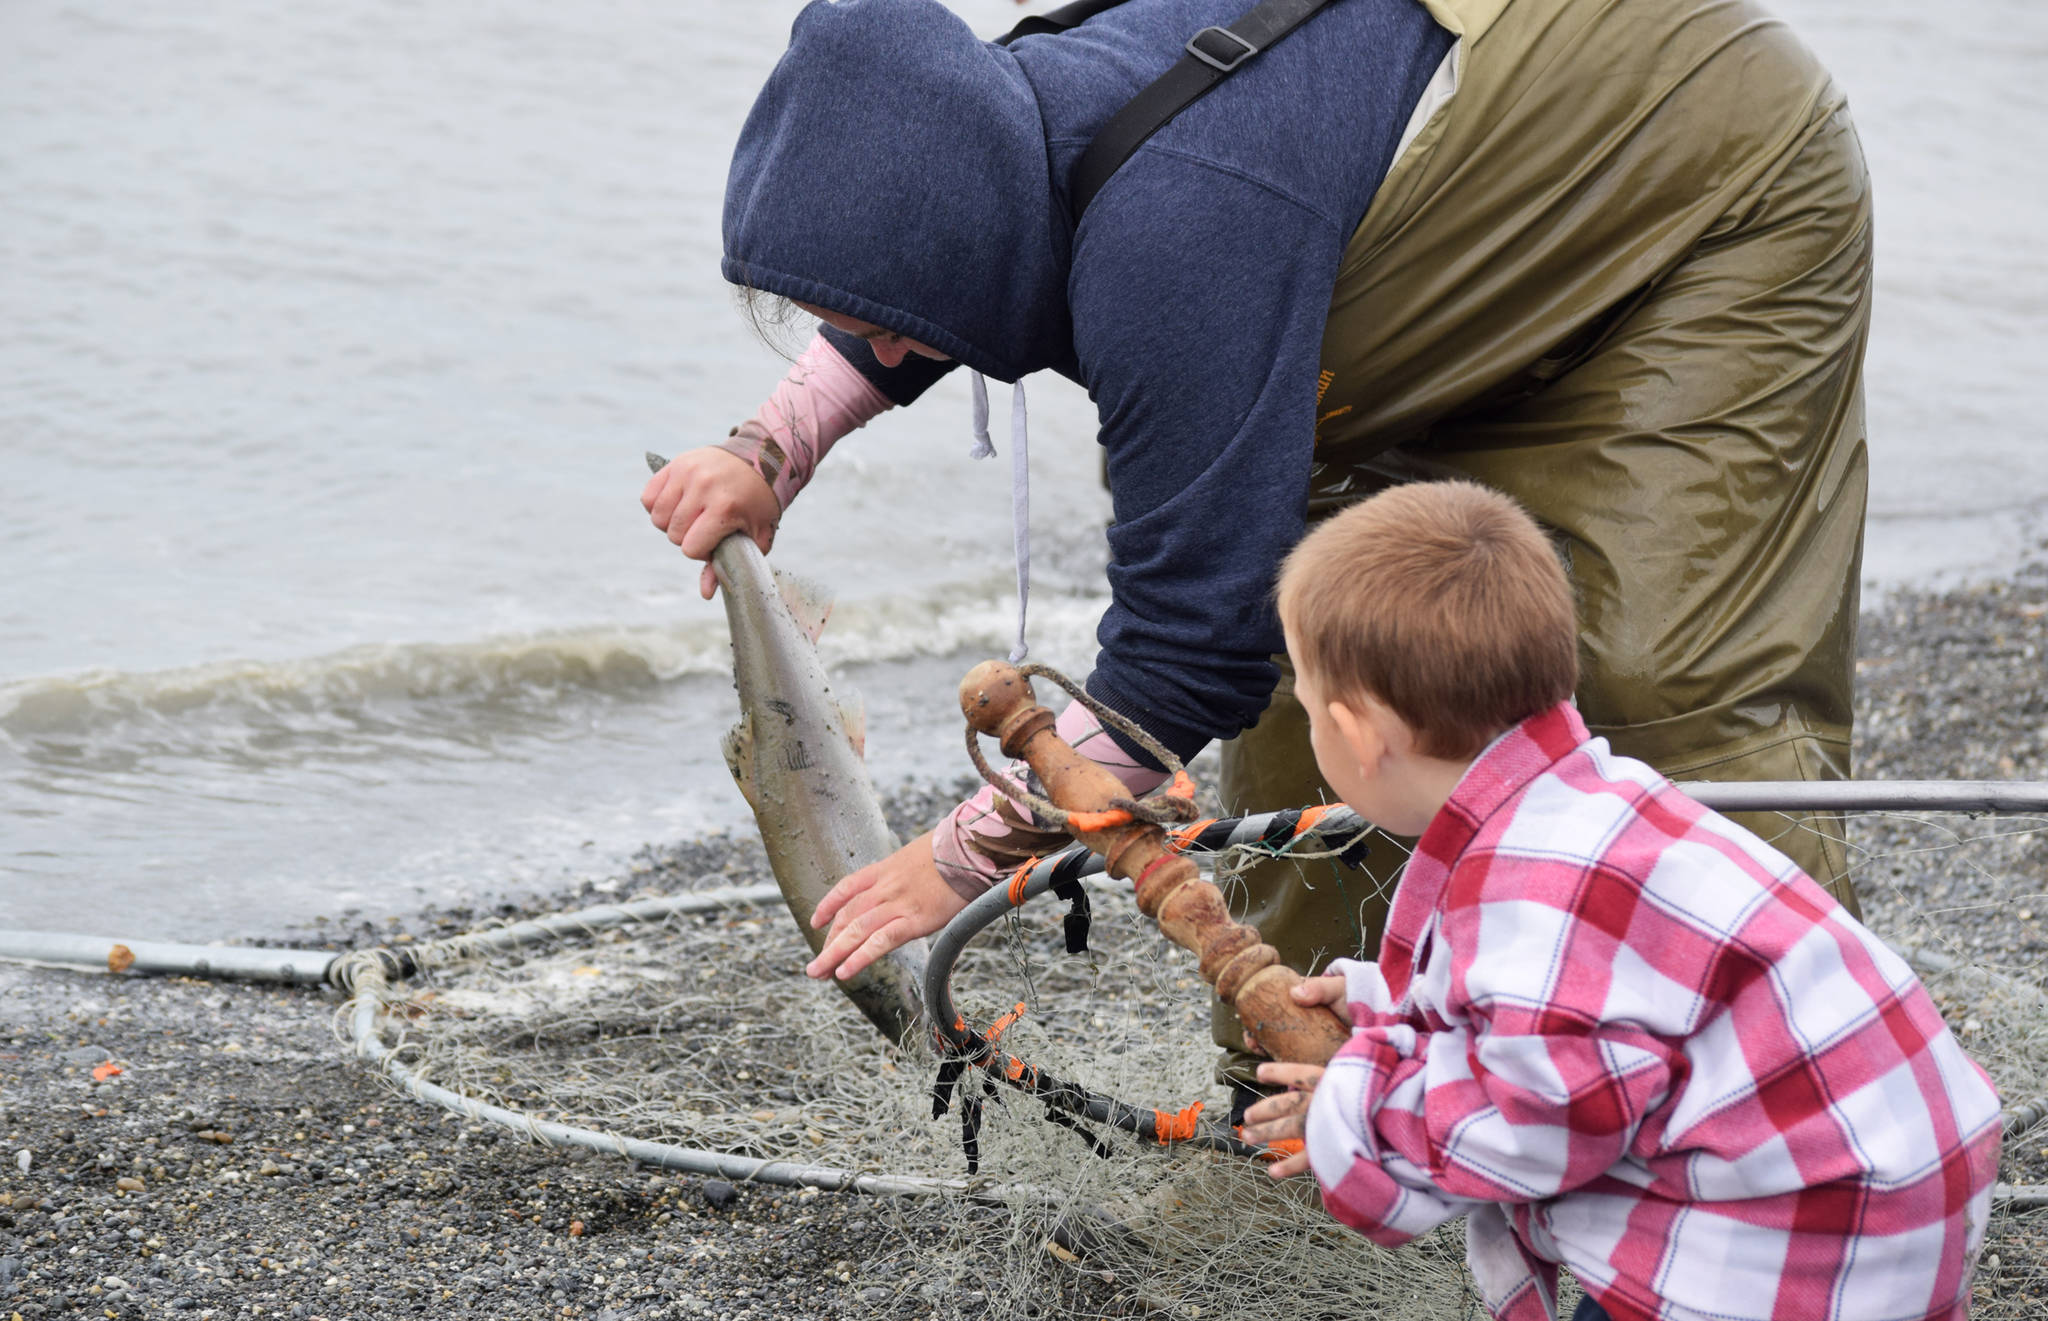 Onya Pate (left) of Soldotna lifts a sockeye salmon she caught in the Kasilof River from her dipnet while her son Epic Lee (right) hands her a bonker on Tuesday, July 31, 2018 in Kasilof, Alaska. (Photo by Elizabeth Earl/Peninsula Clarion)